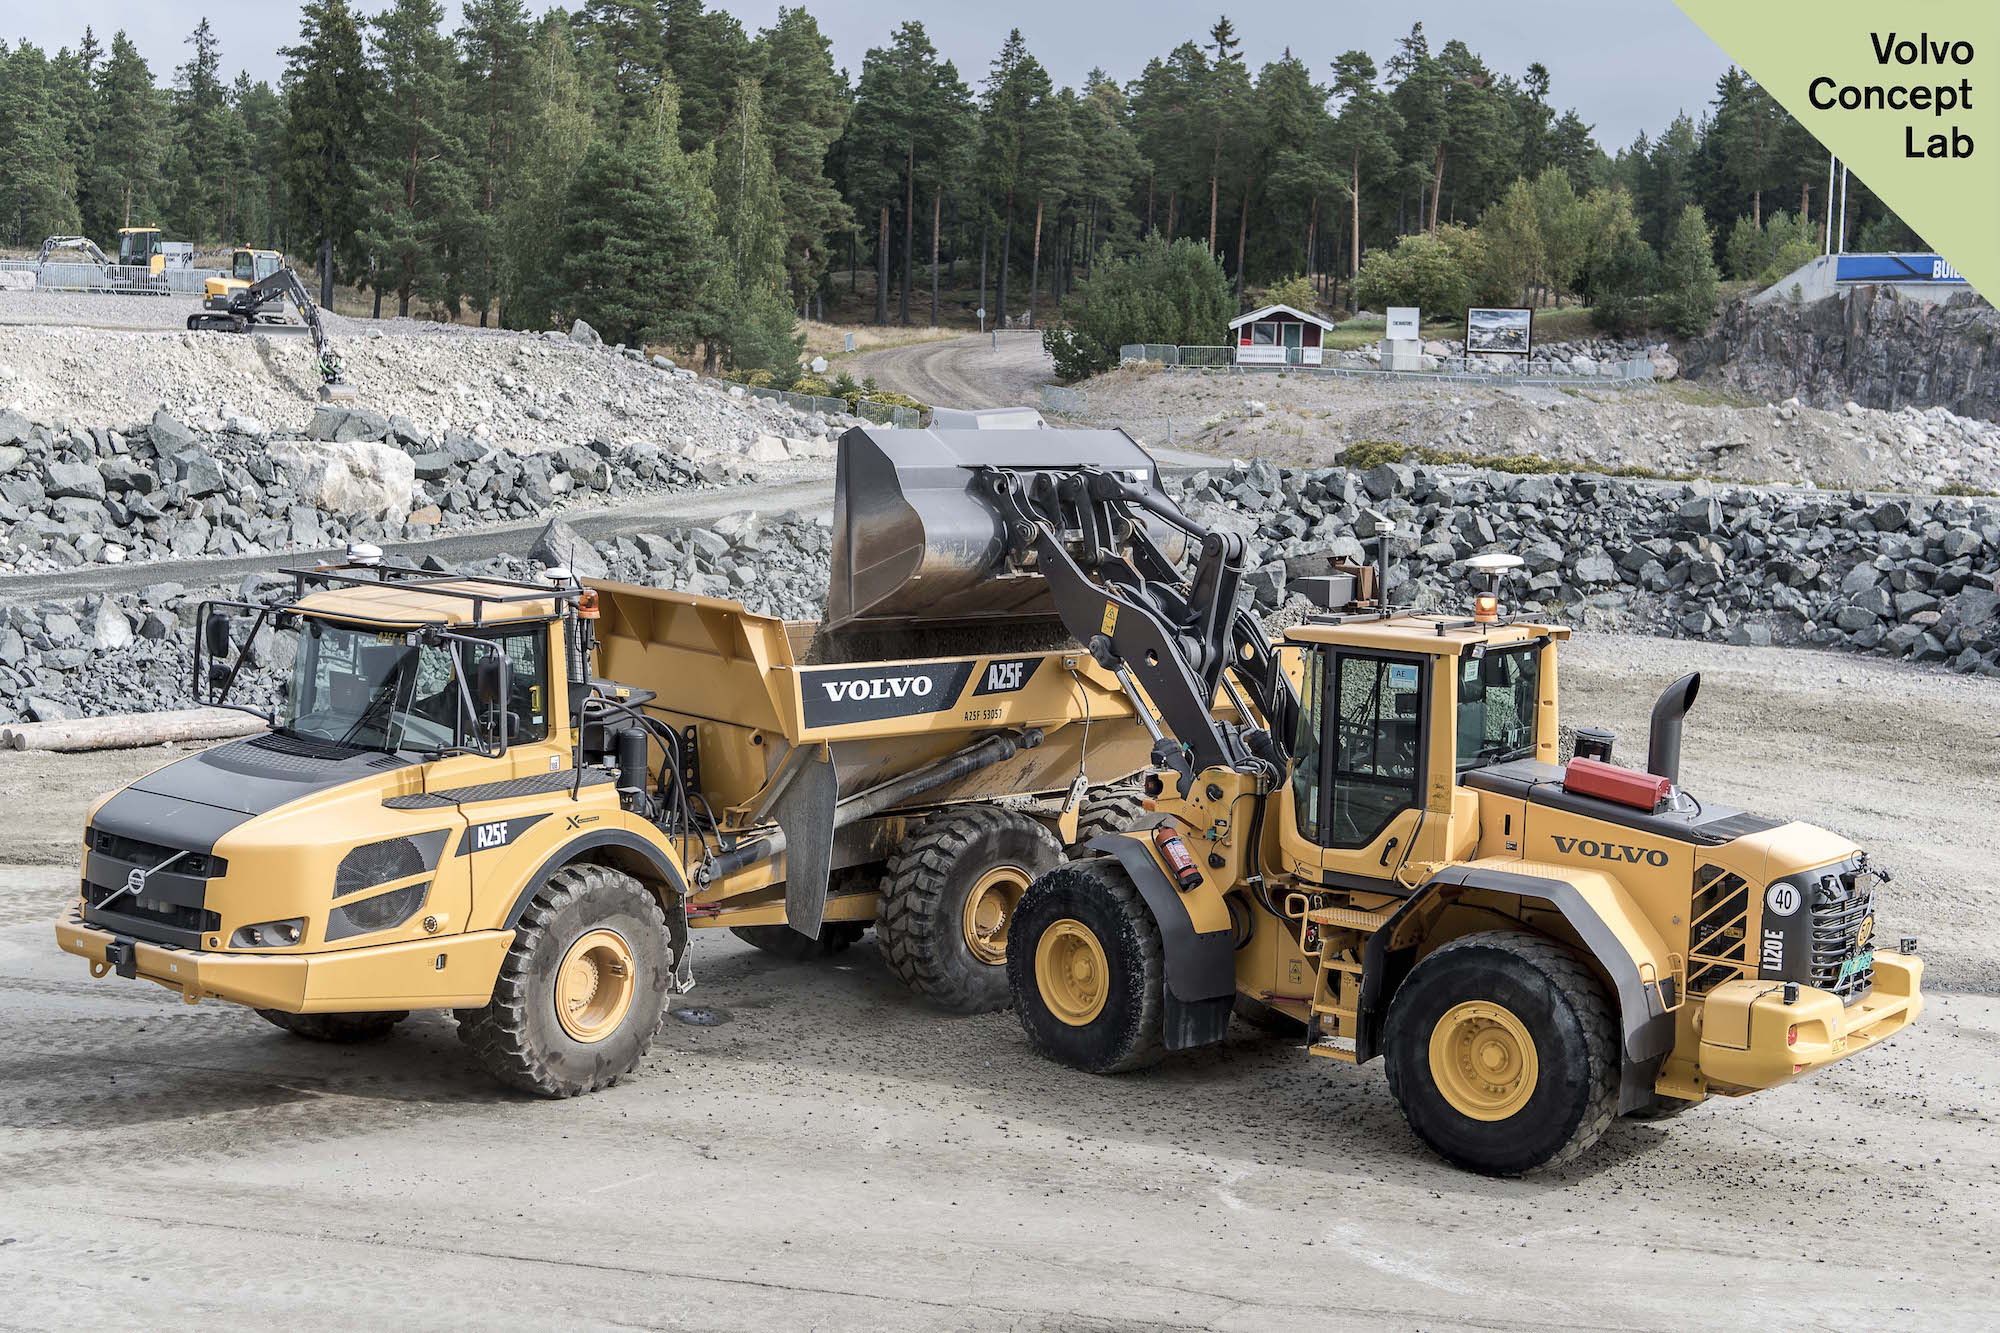 Volvo CE Unveils its Future: Concept machines reveal bets on automation, electrification